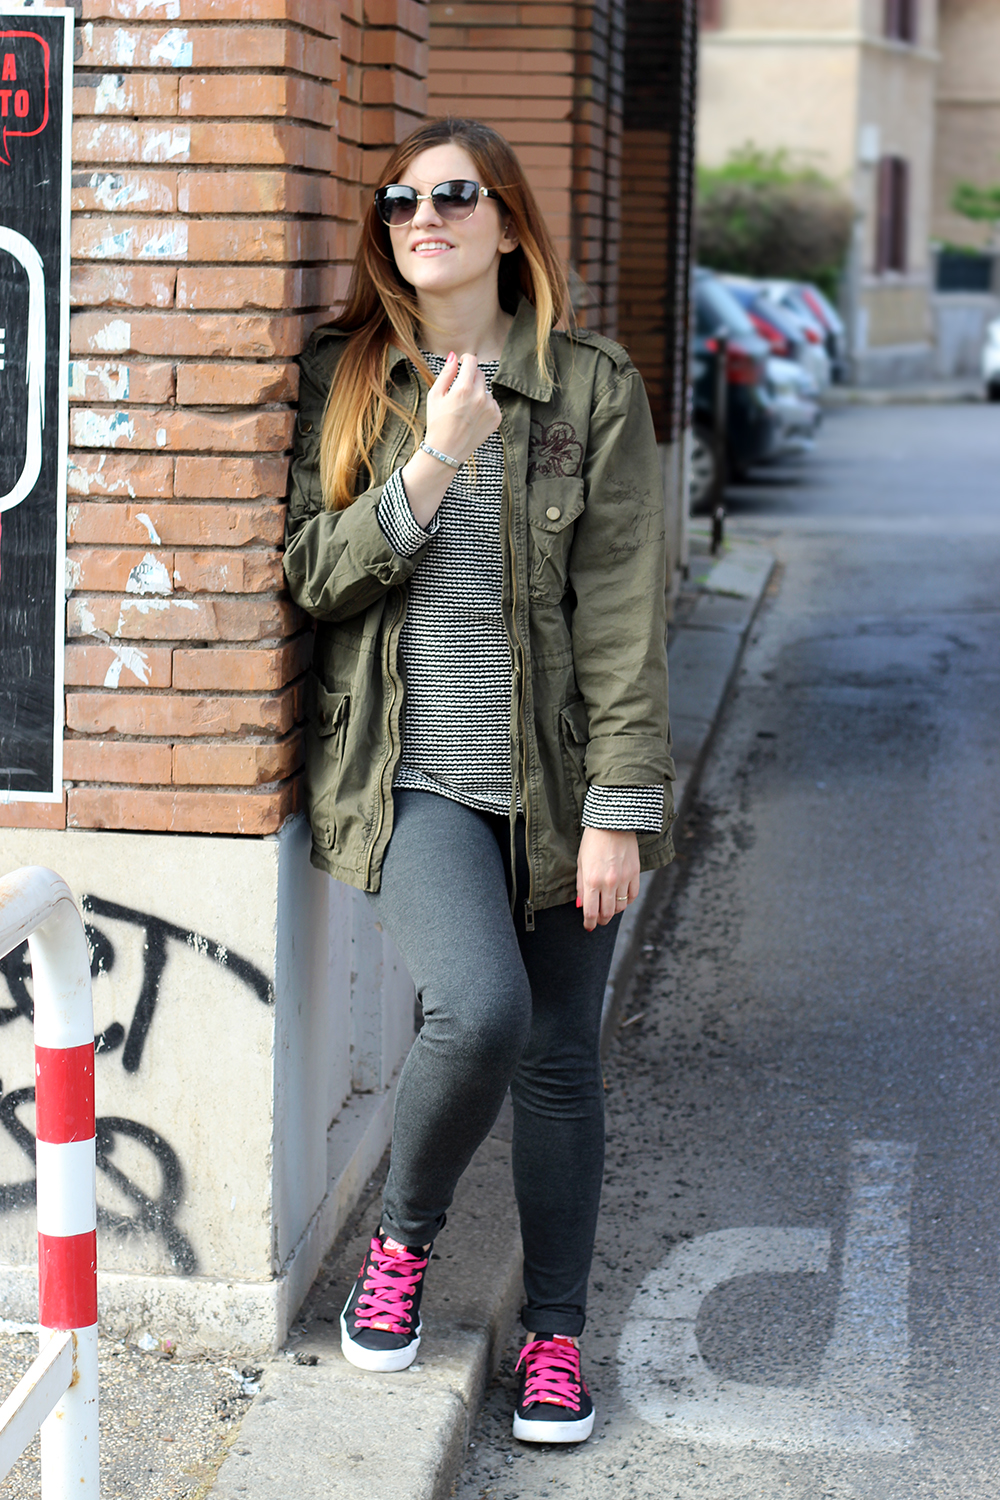 MILITARY STYLE OUTFIT ABBIGLIAMENTO DONNA COCACOLA SHOES